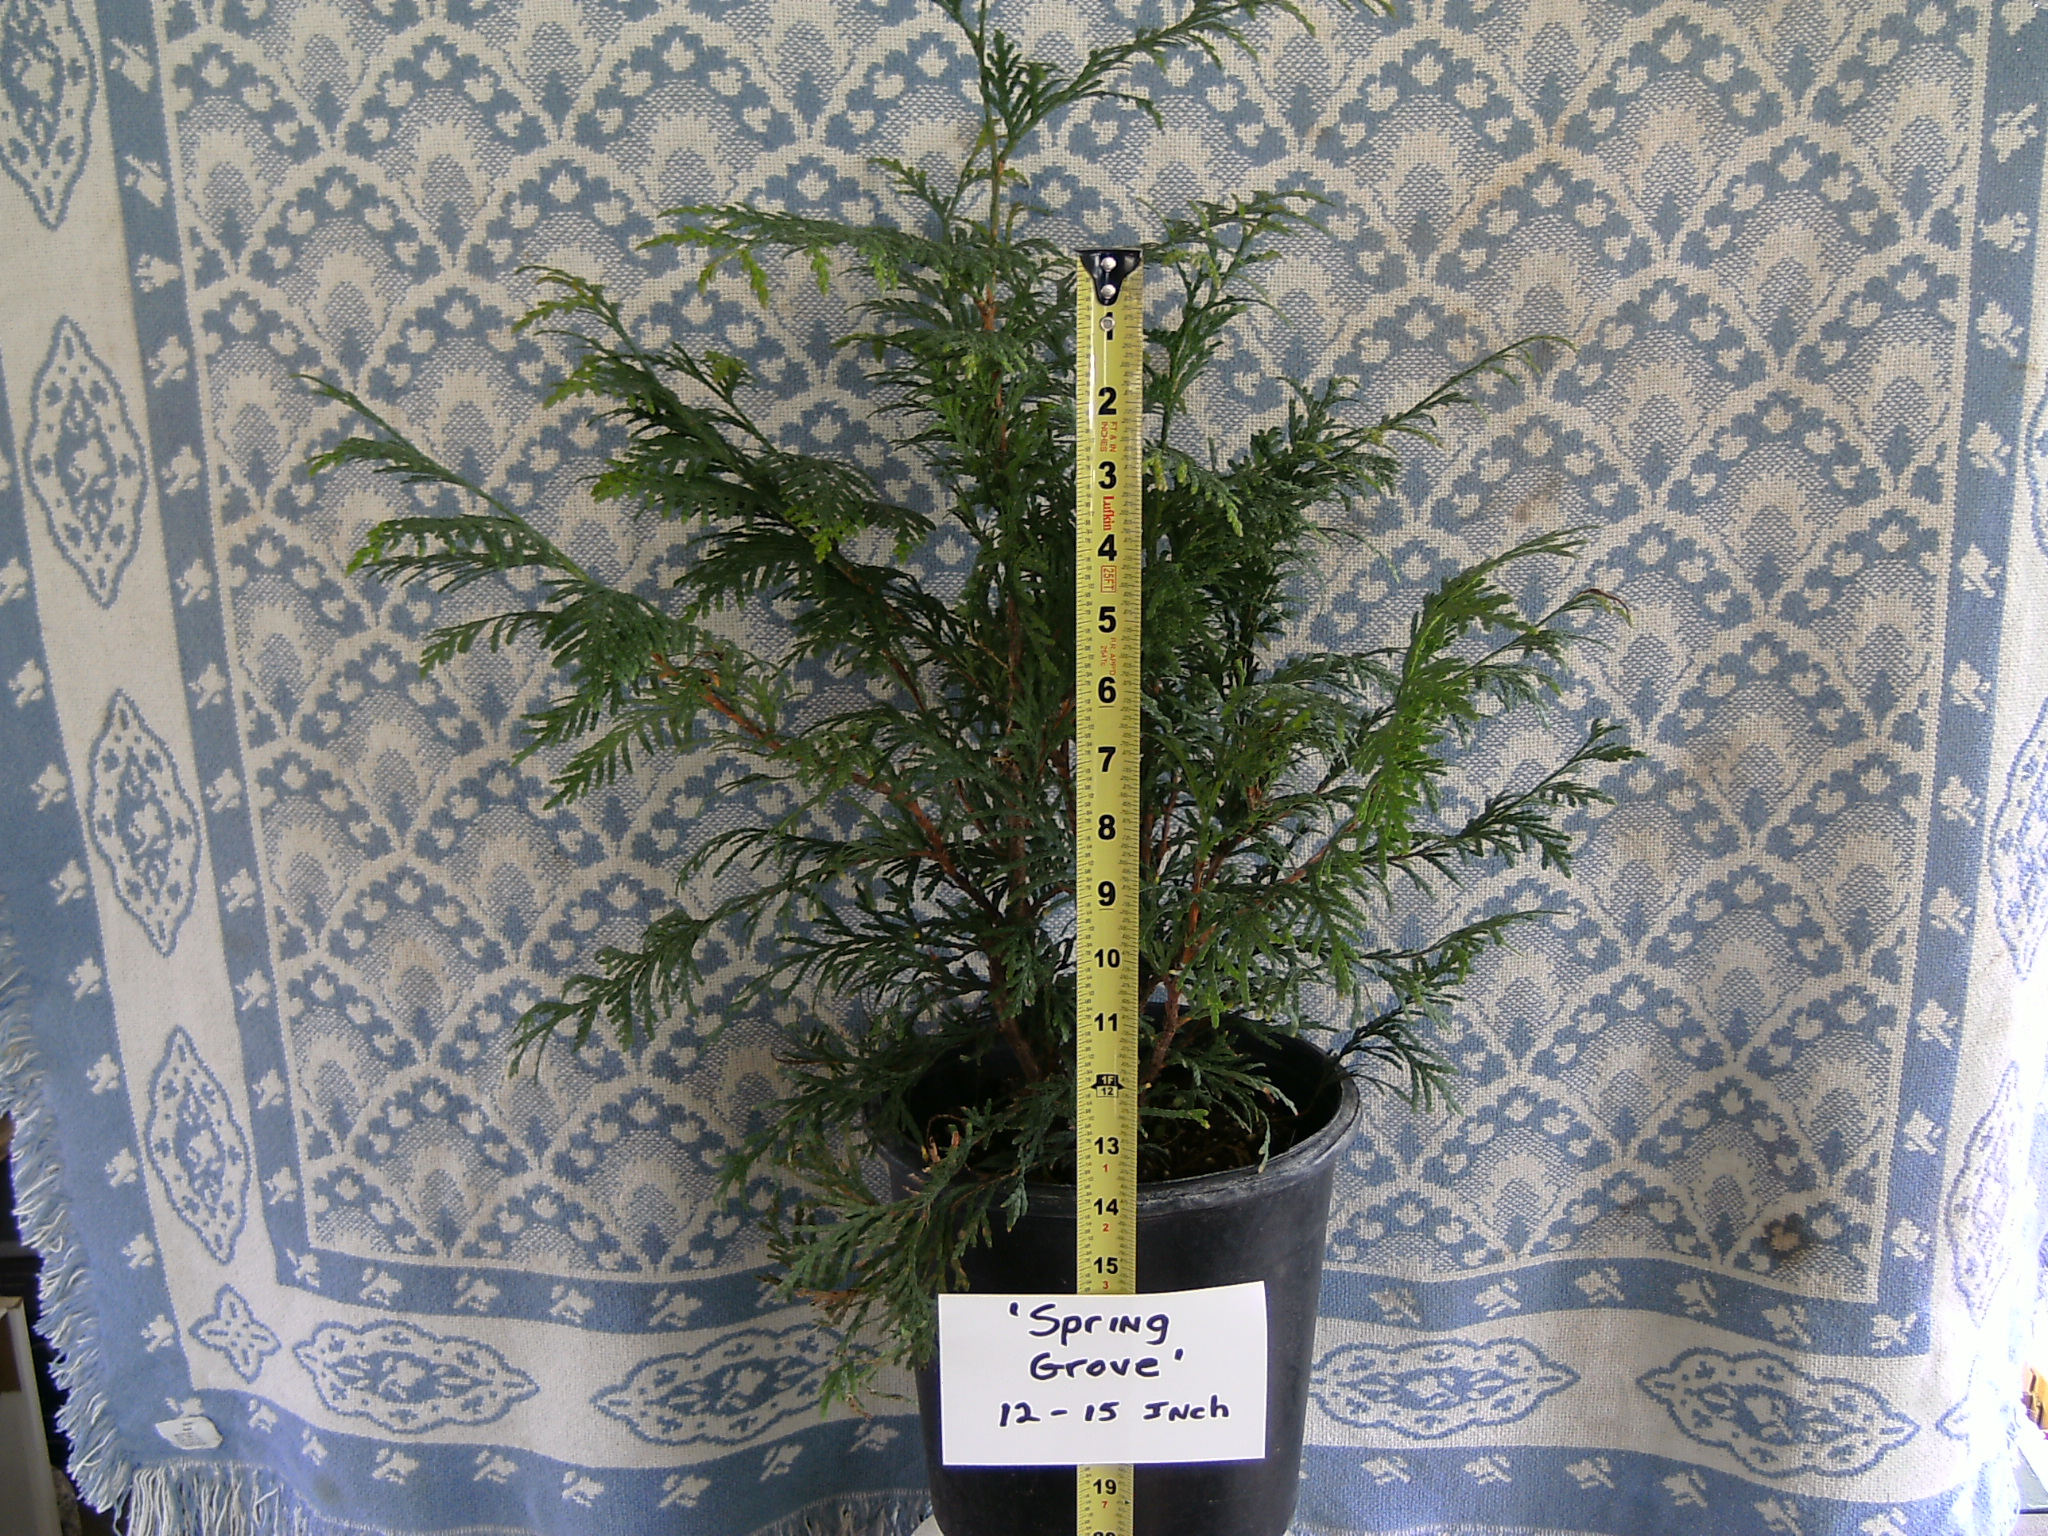 Our 12-15 inch tall Spring Grove Arborvitae Liner